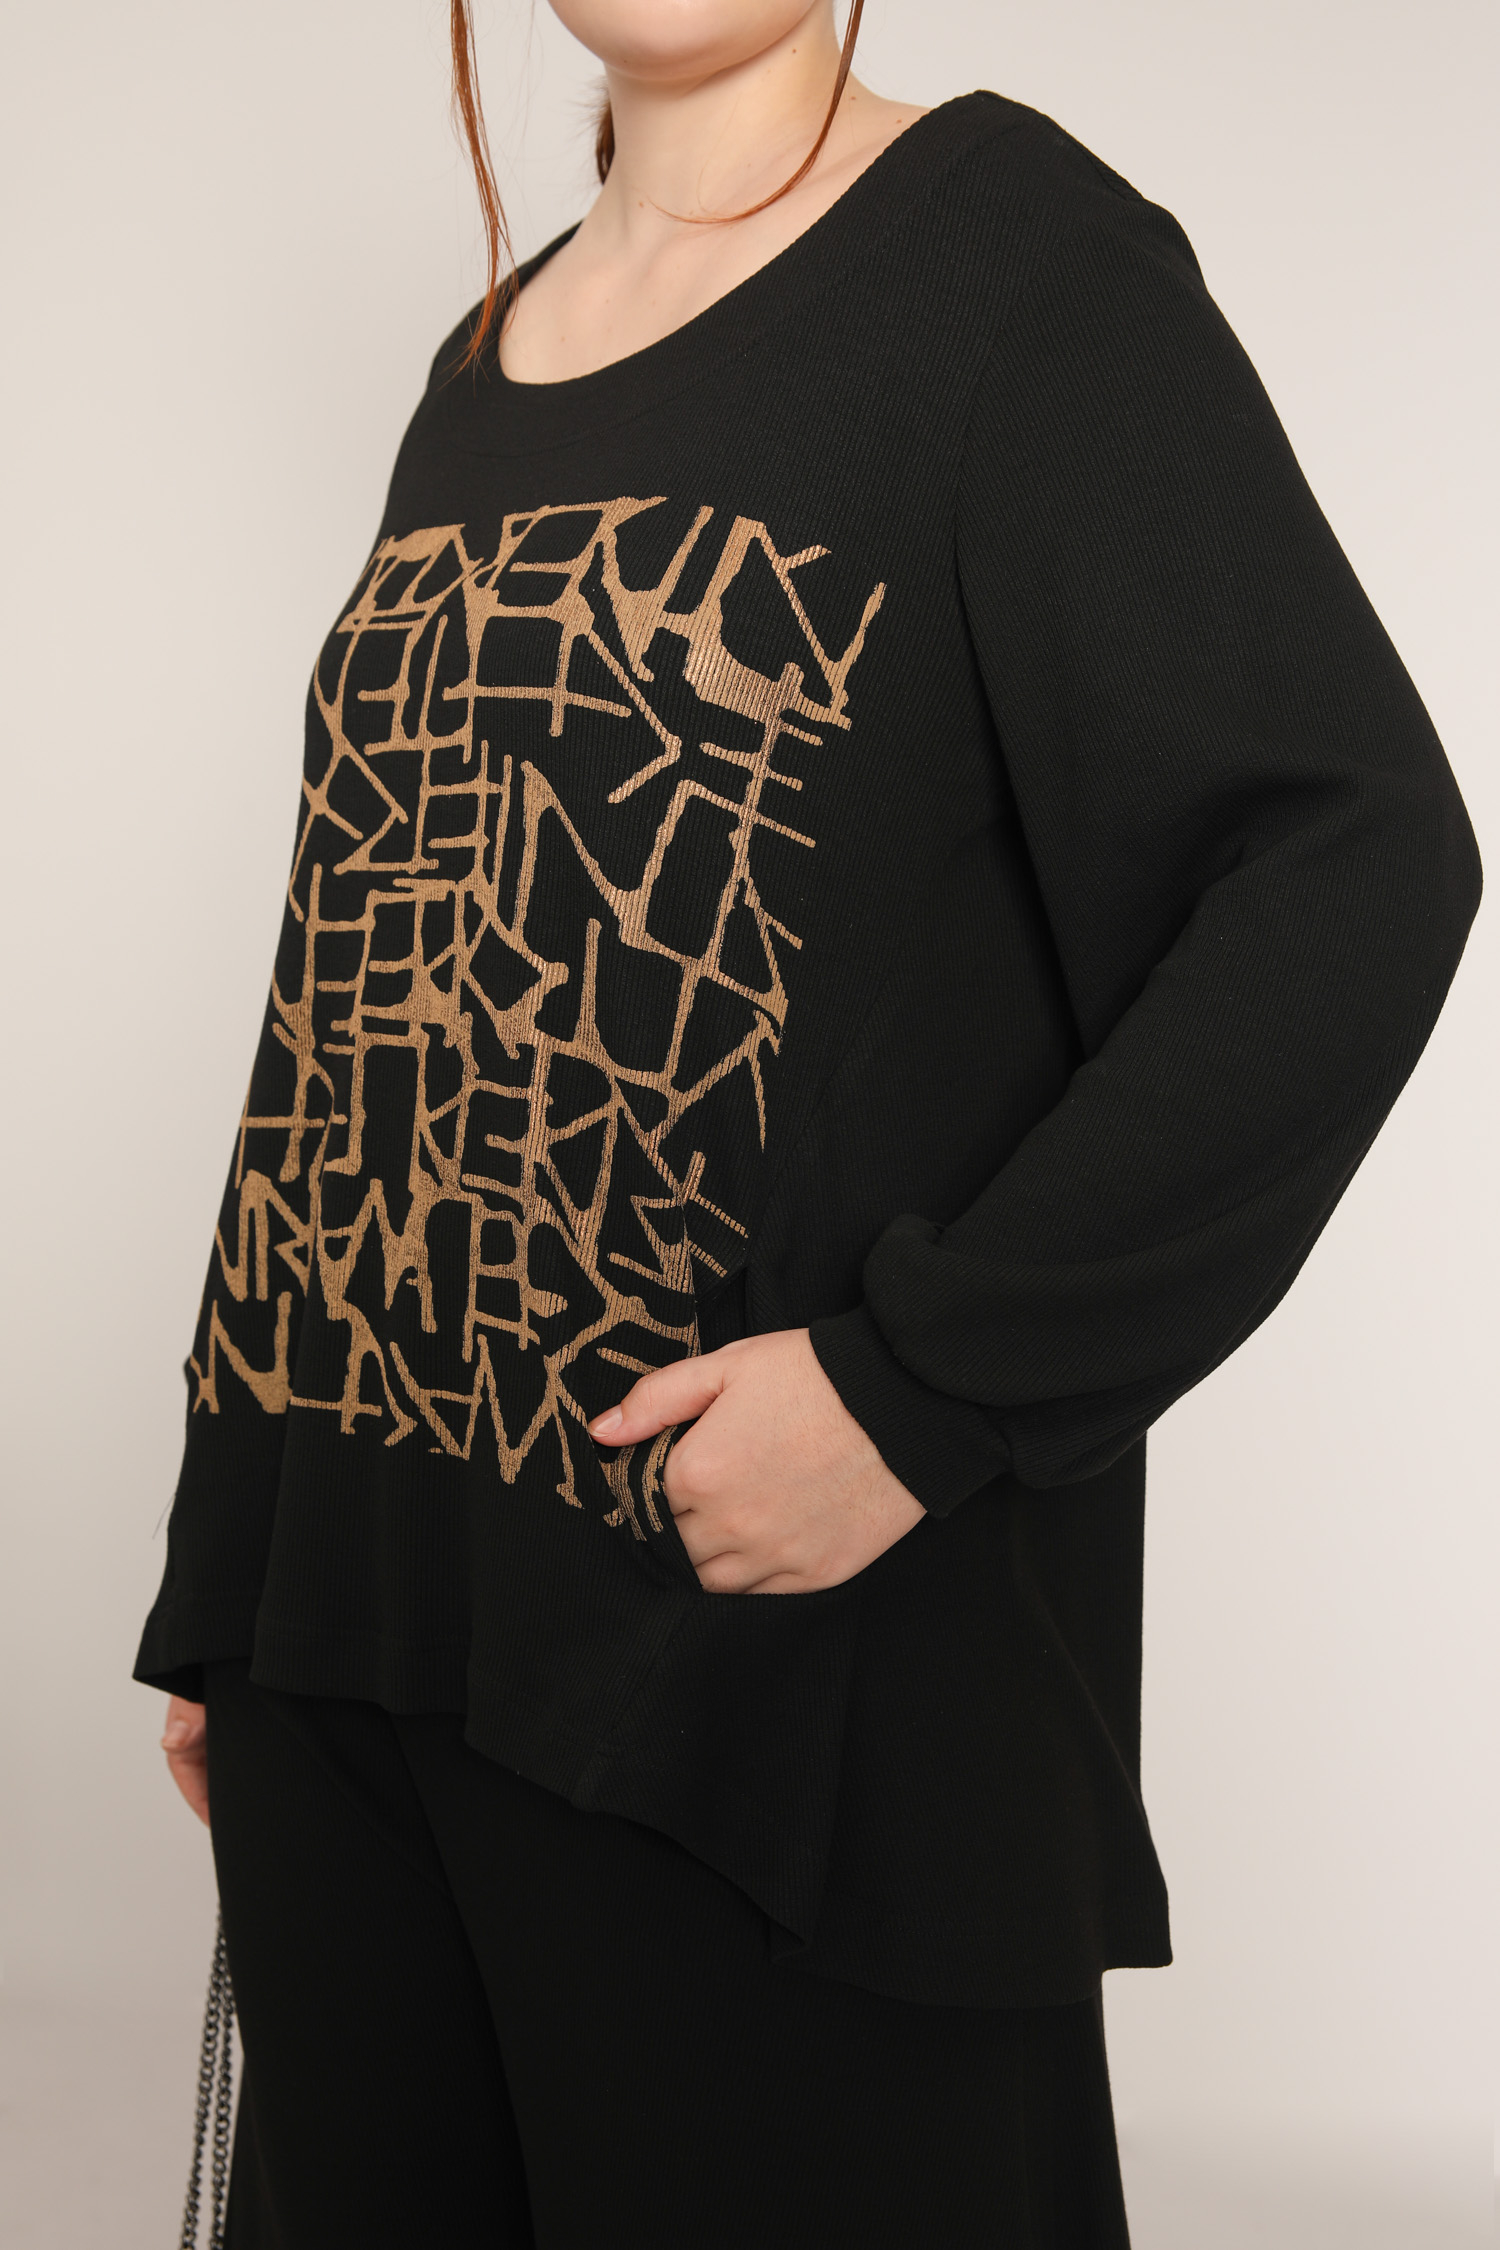 Knit sweater with screen printing (delivery October 25-30)